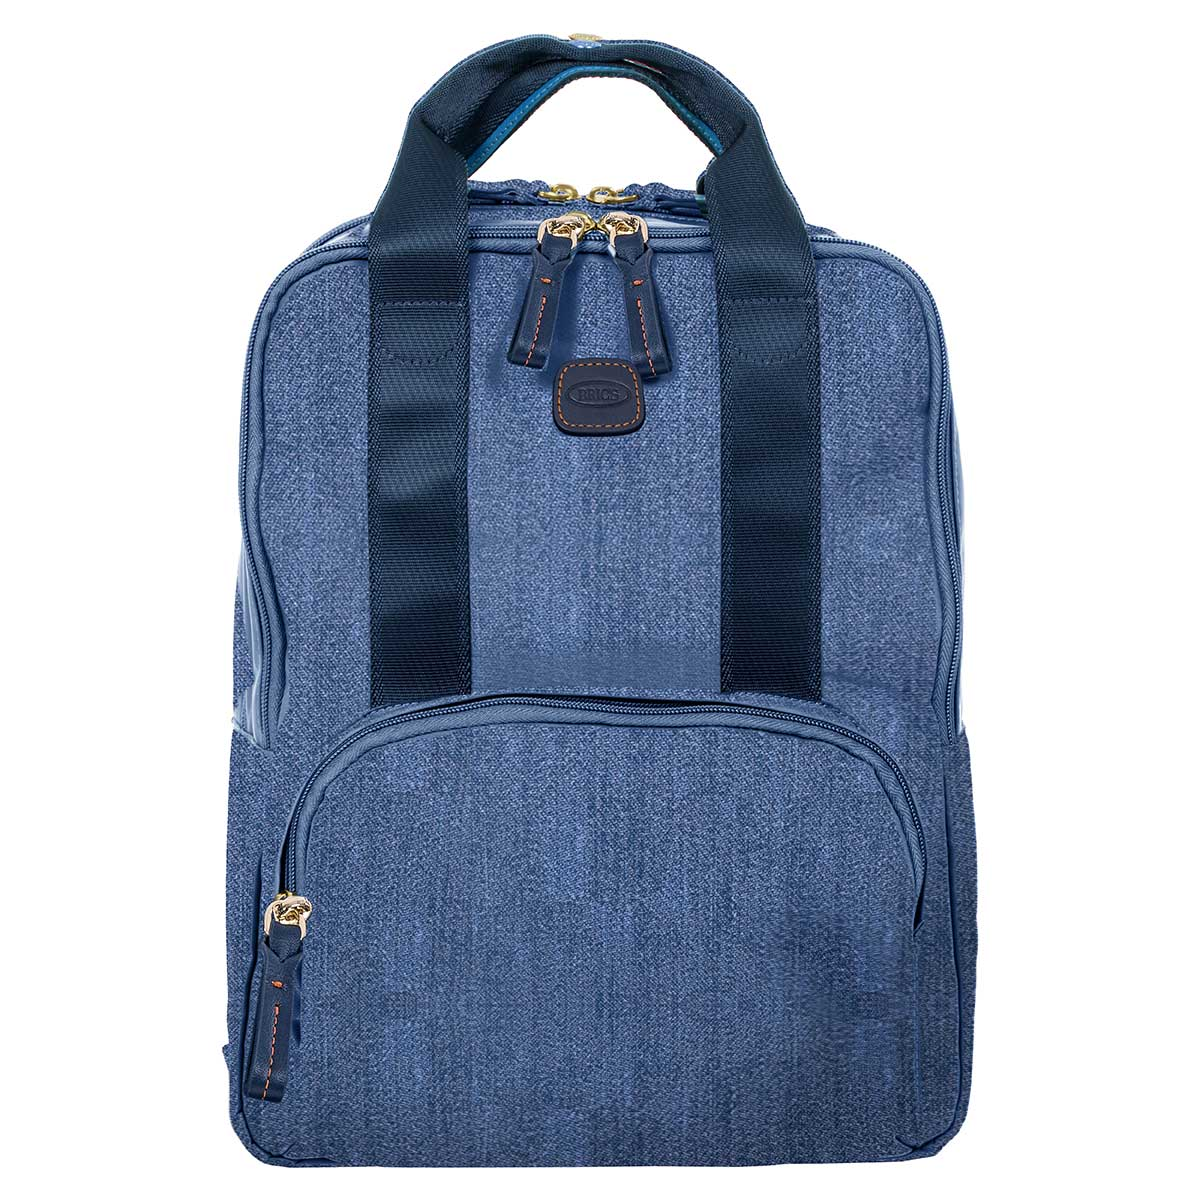 X-bag Urban Backpack - Jean Blue | BRIC'S Travel Bags